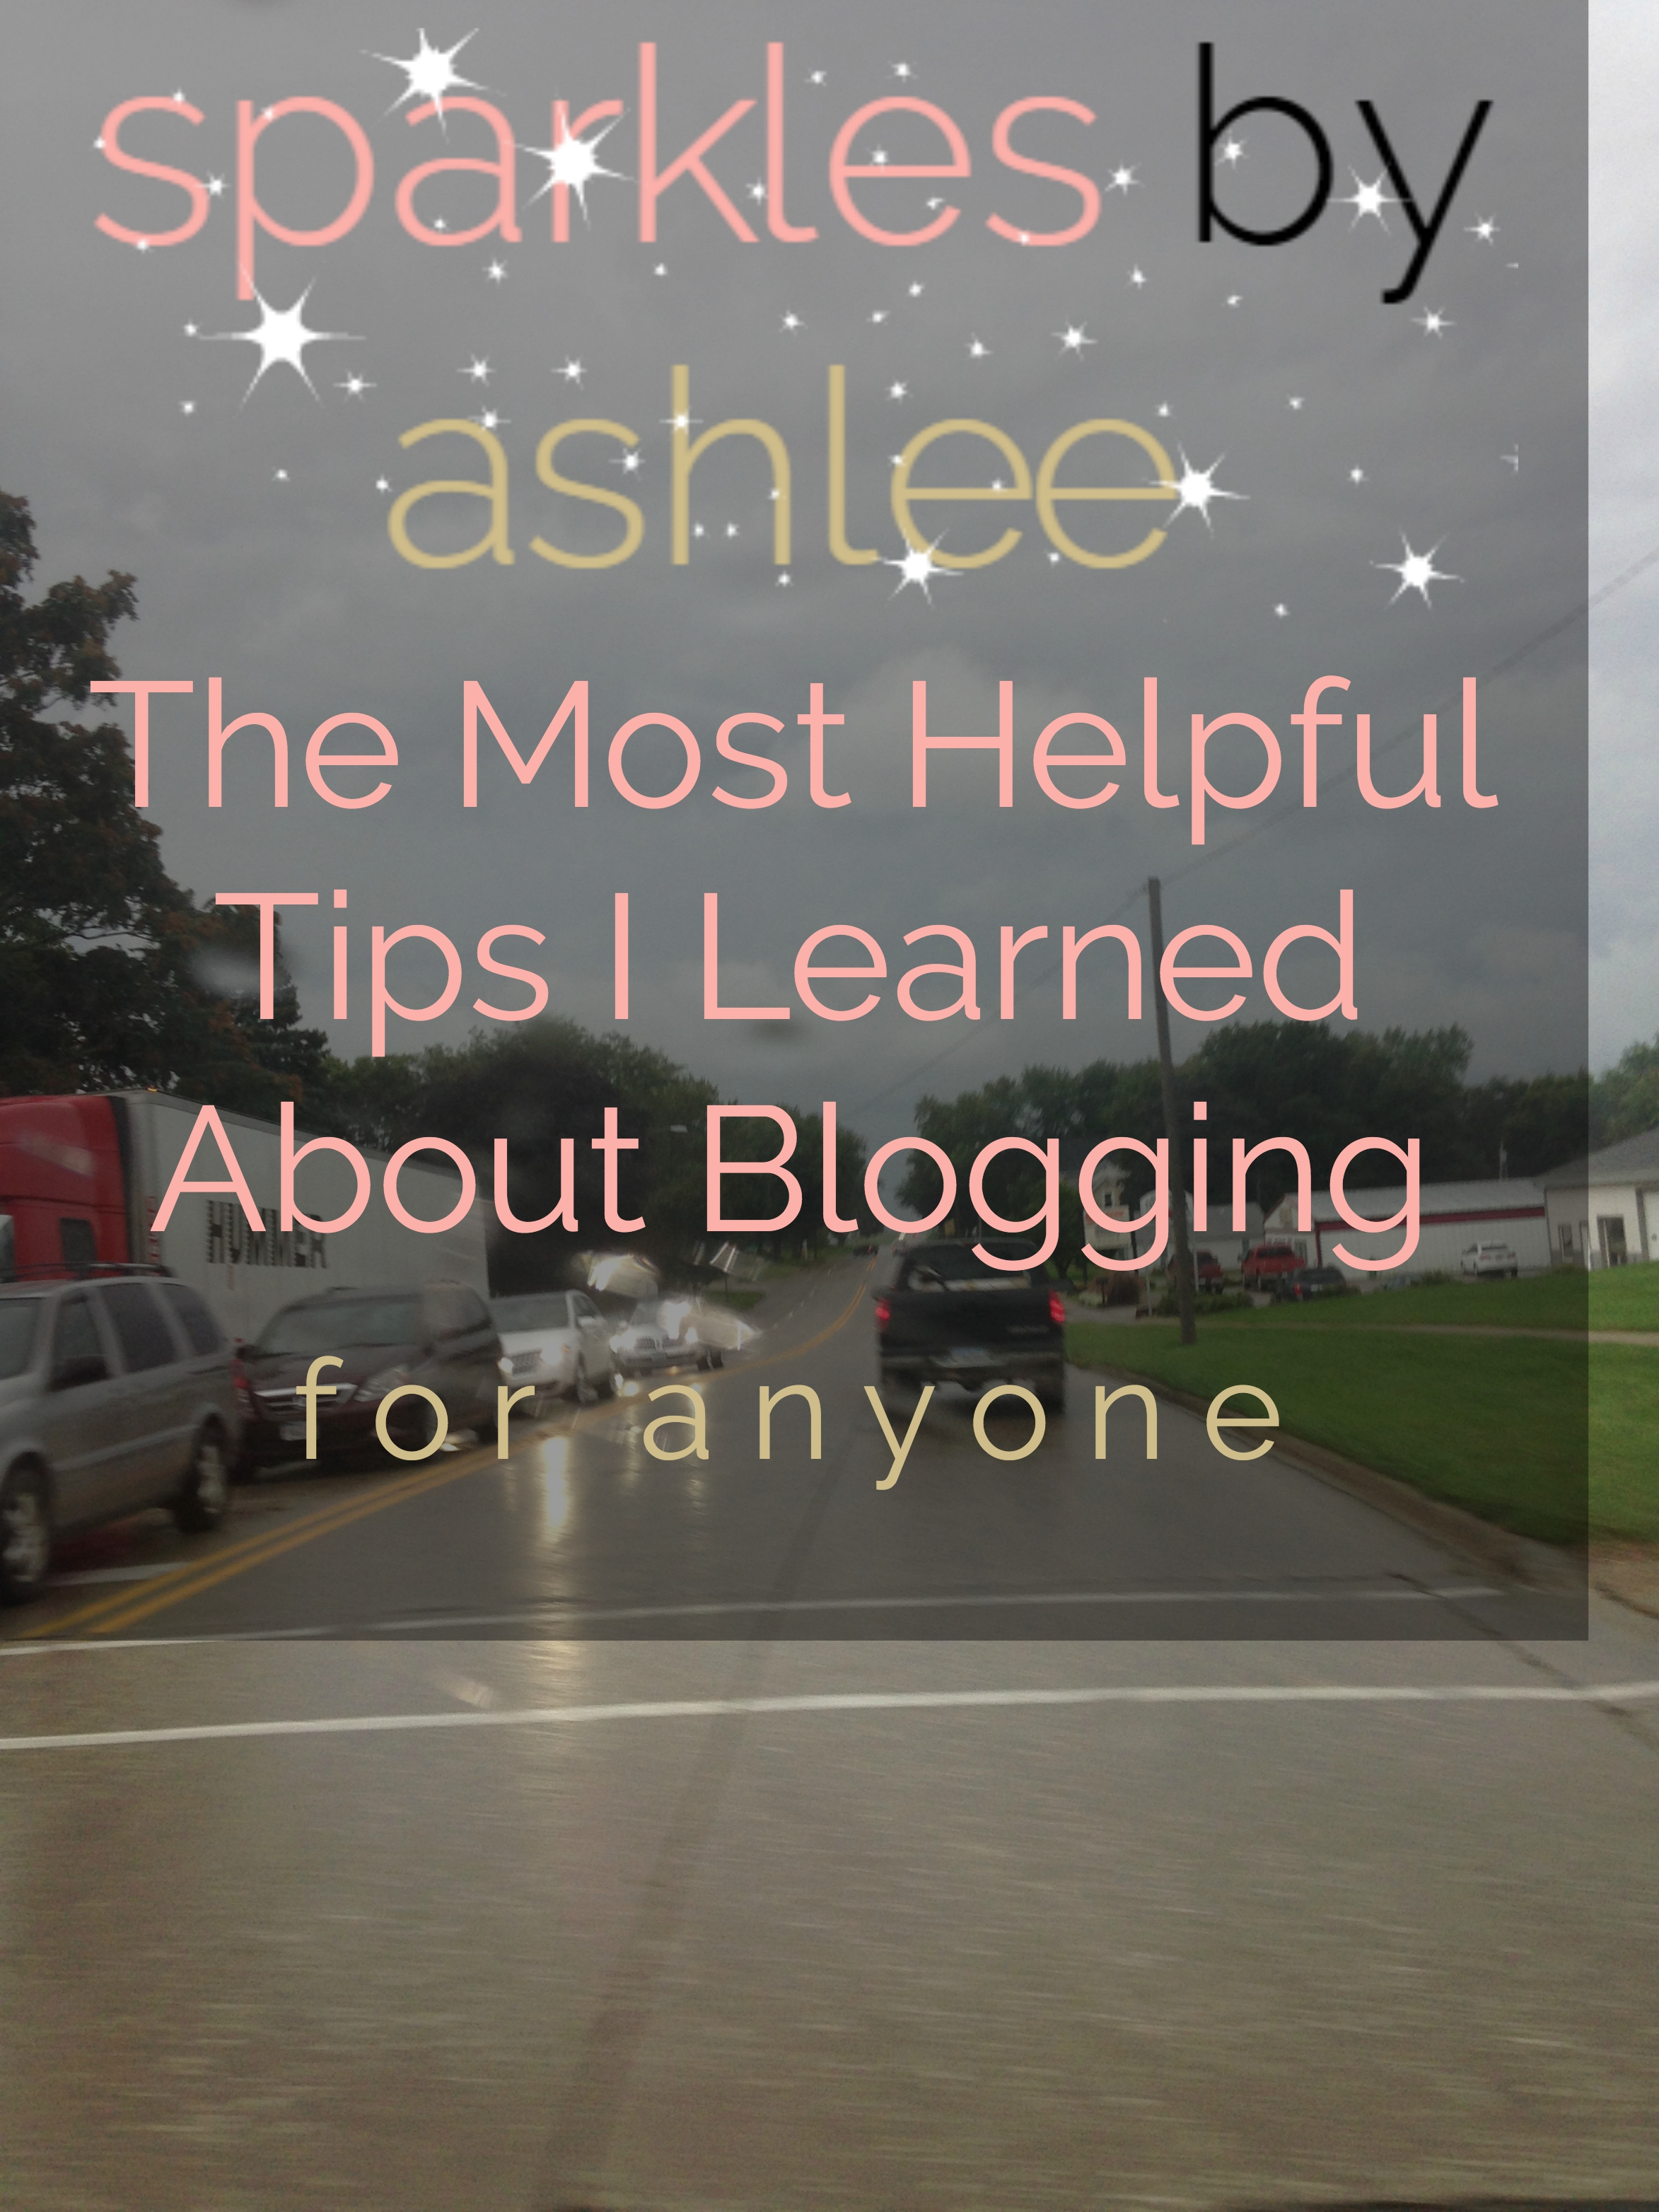 The-Most-Helpful-Tips-I-Learned-About-Blogging-Sparkles-by-Ashlee.jpg